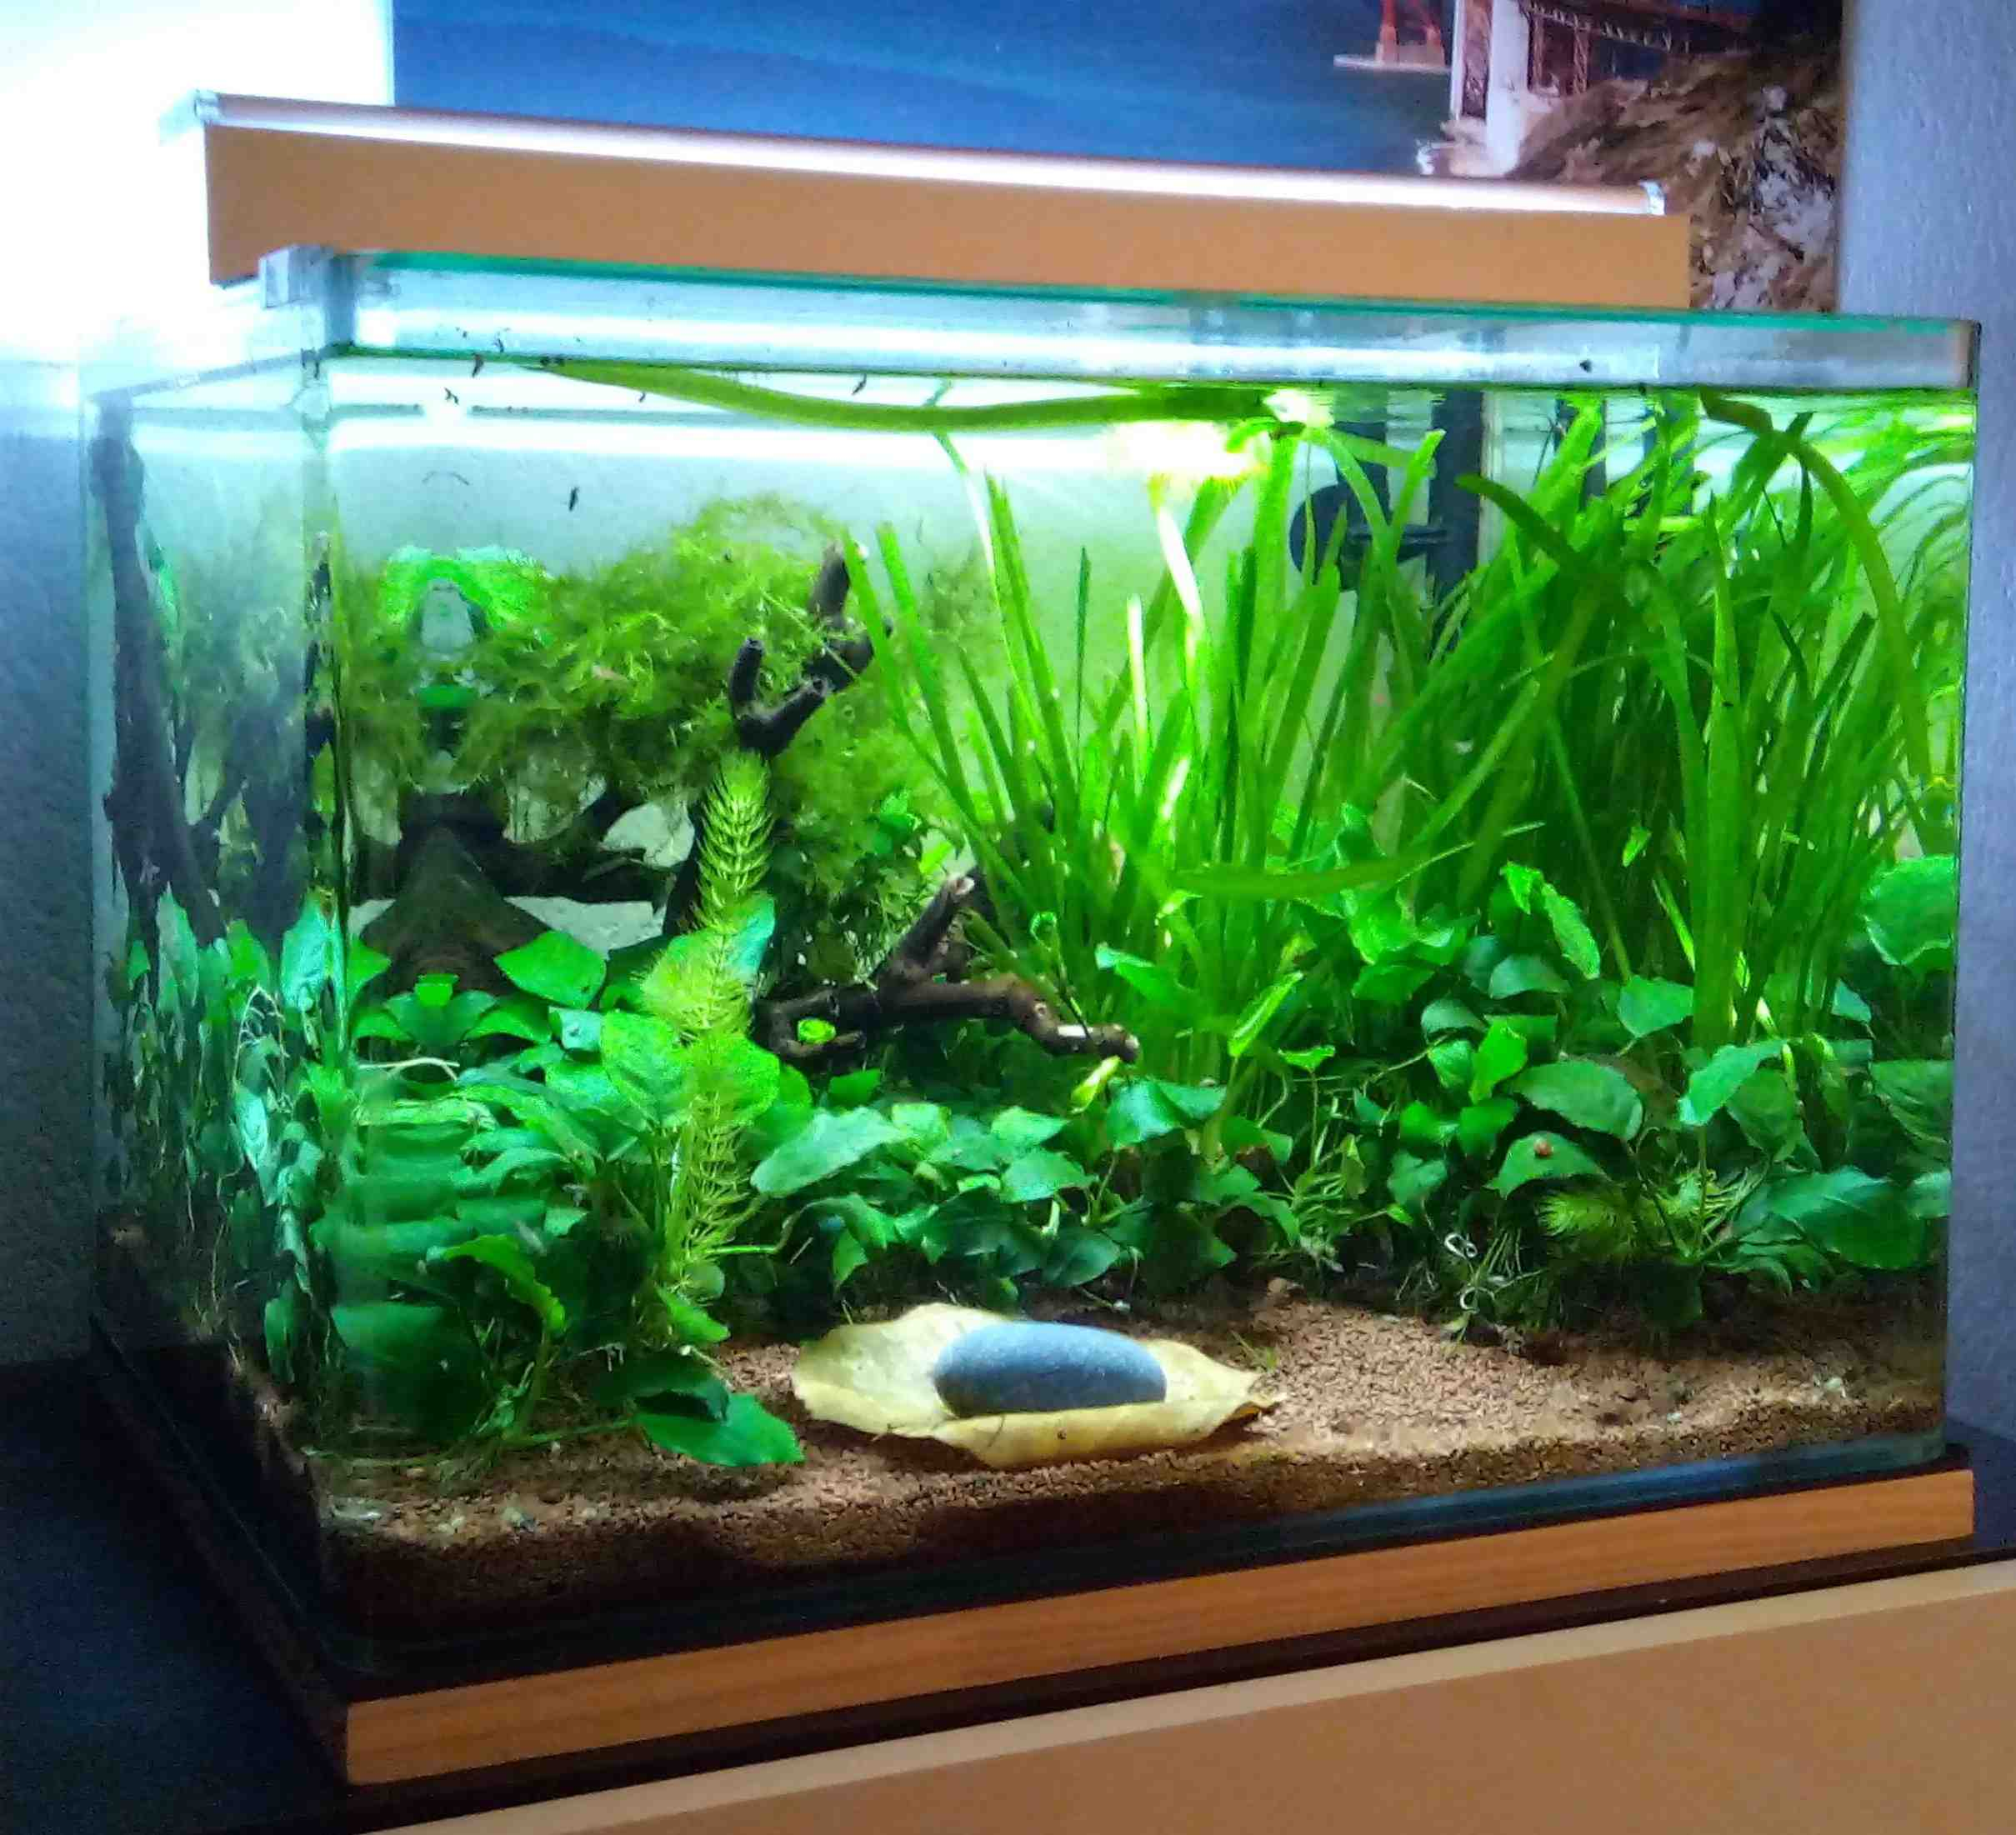 Quelle plante aquarium choisir ?